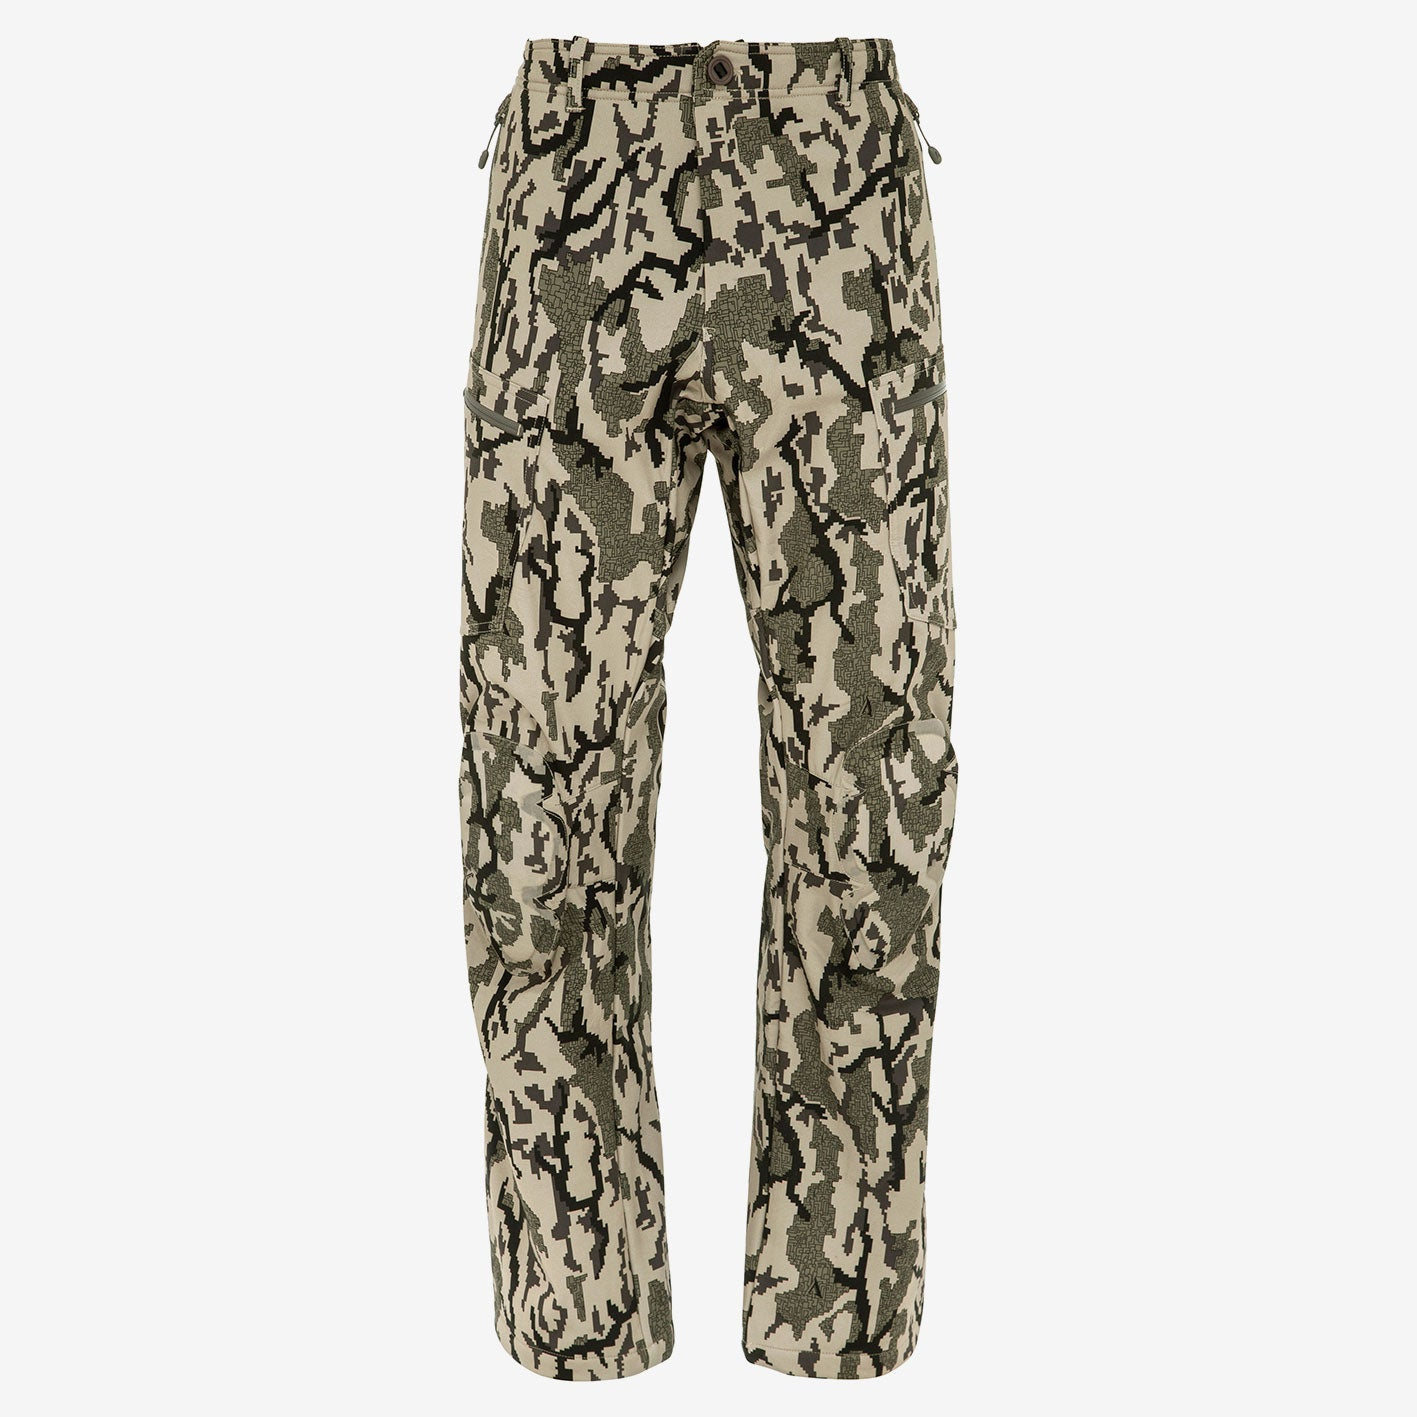 Men's Hunting Pants - Peak Season Pant